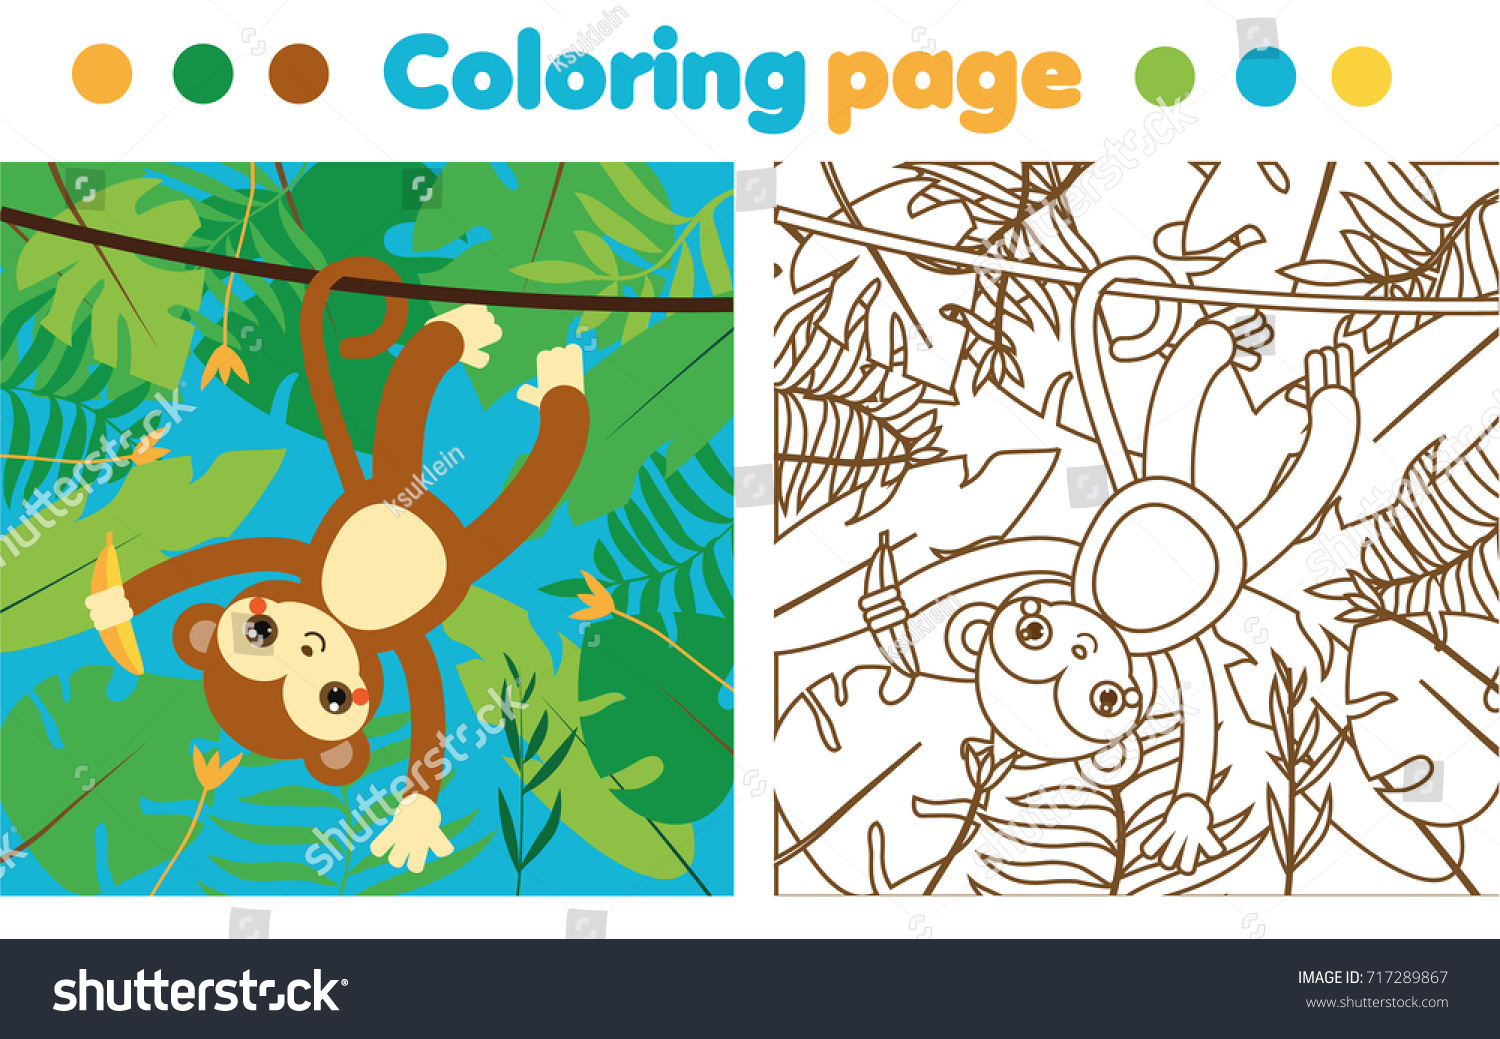 Coloring Page Children Monkey Jungle Drawing Stock Vector 717289867 ...